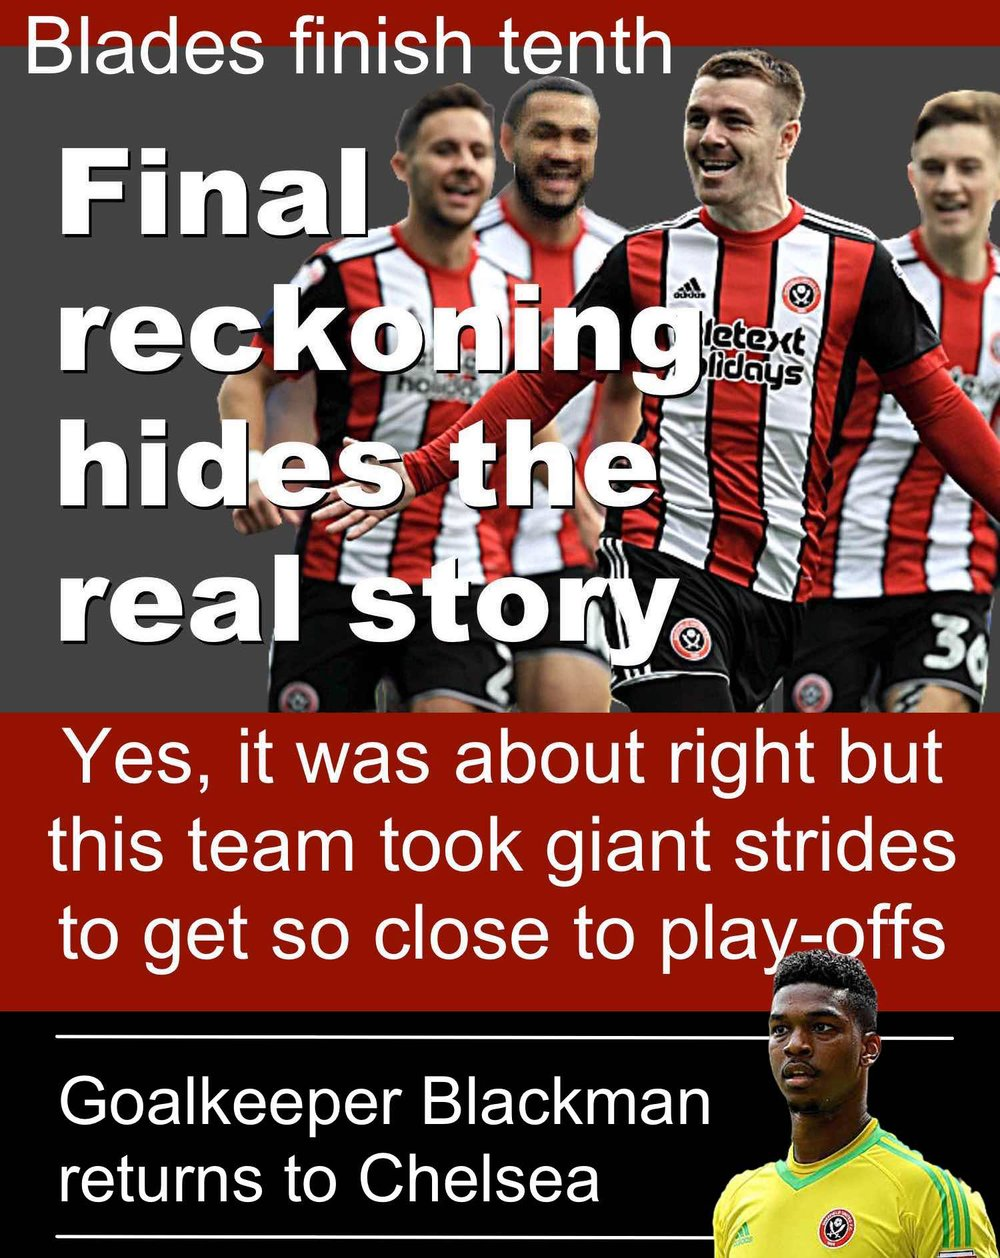 Sheffield United's final championship reckoning doesn't tell the whole story for brave Blades